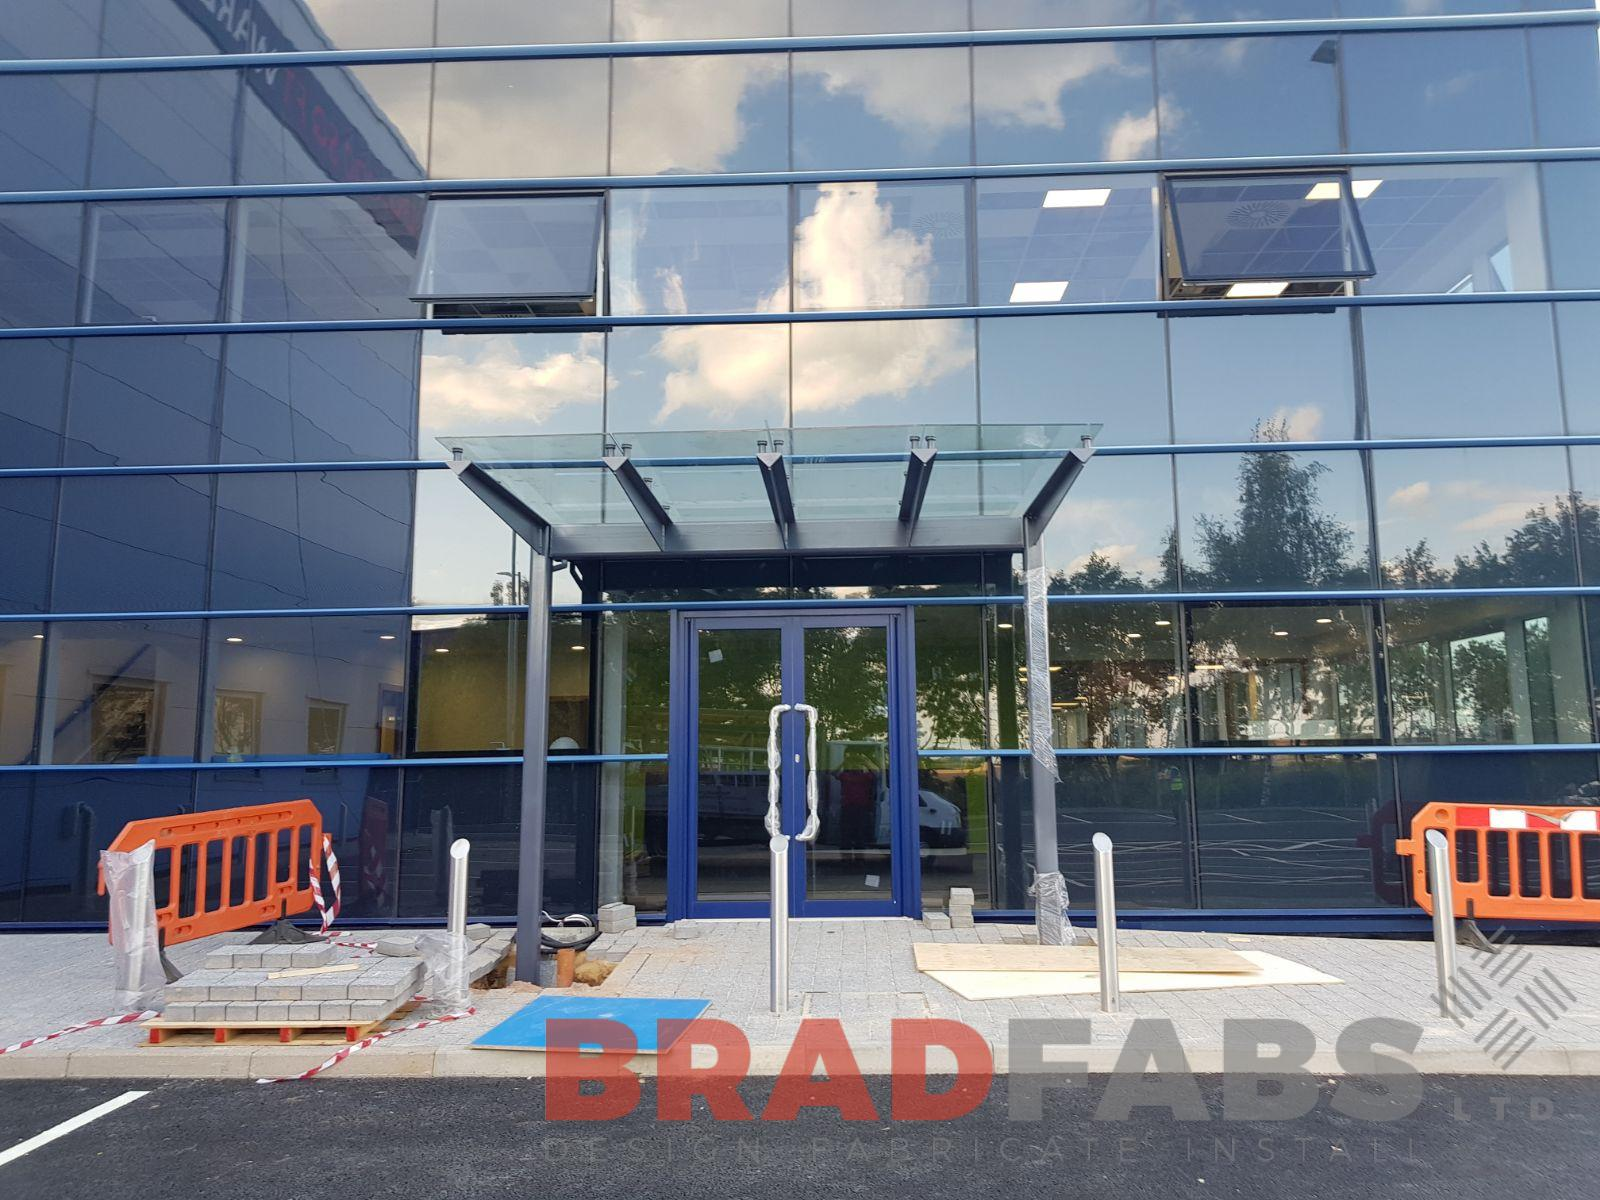 Bradfabs designed and manufactured this large entrance canopy in Hertfordshire